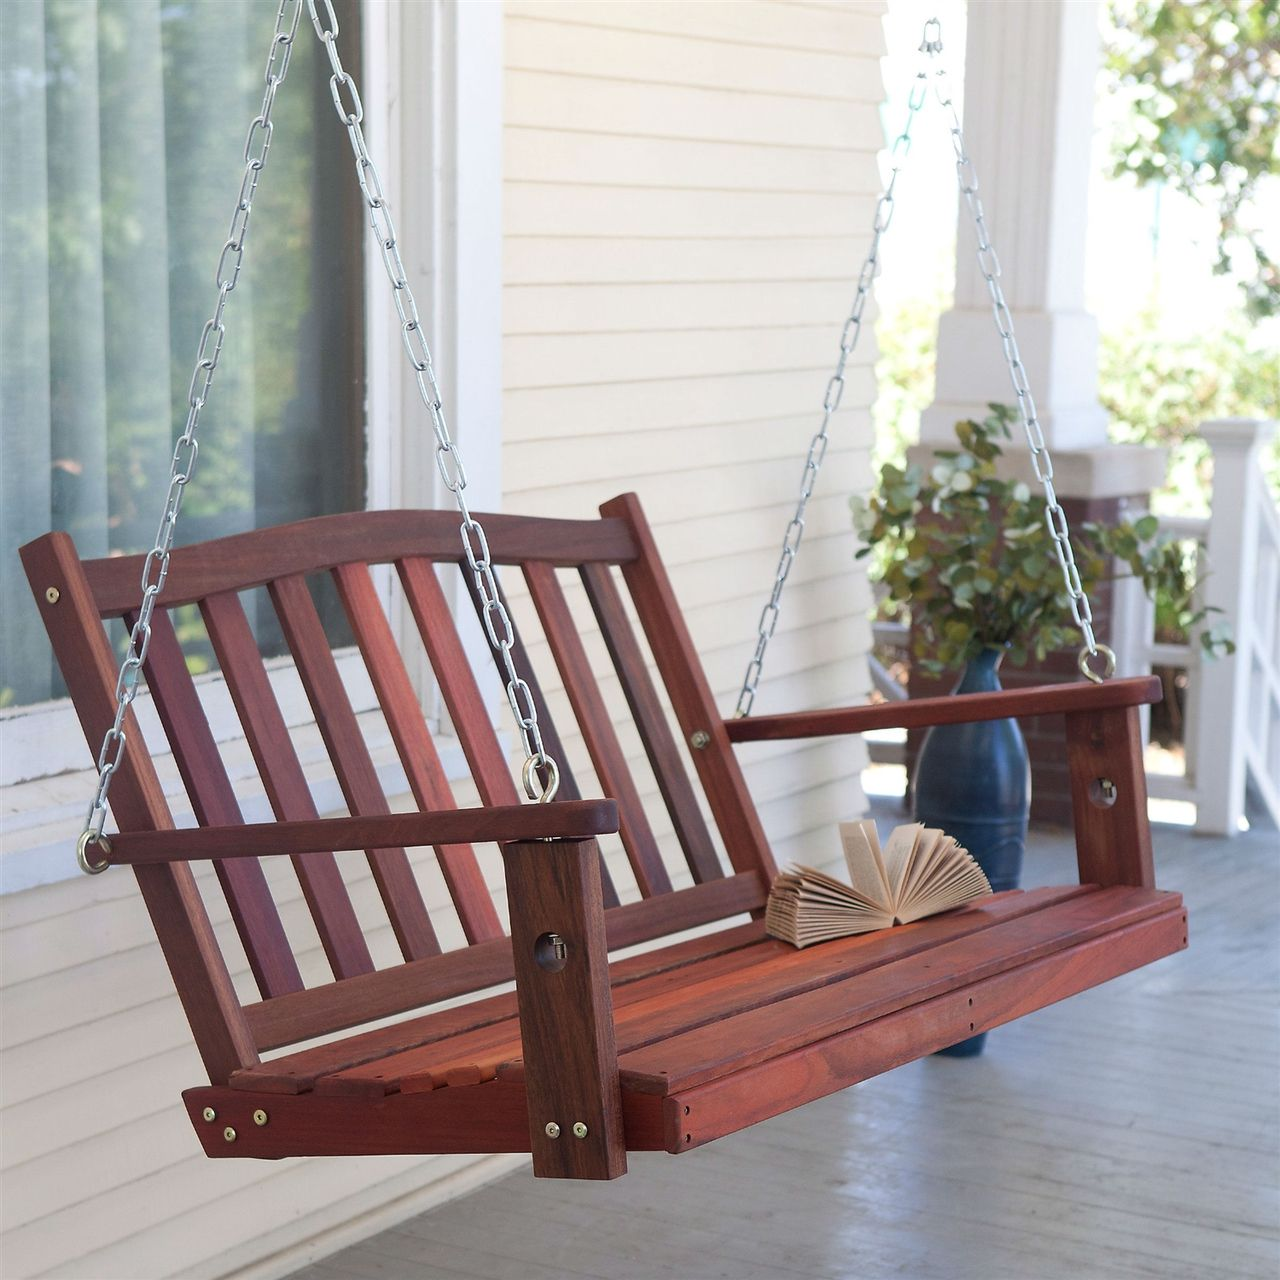 4 Ft Curved Back Porch Swing Bench Chair